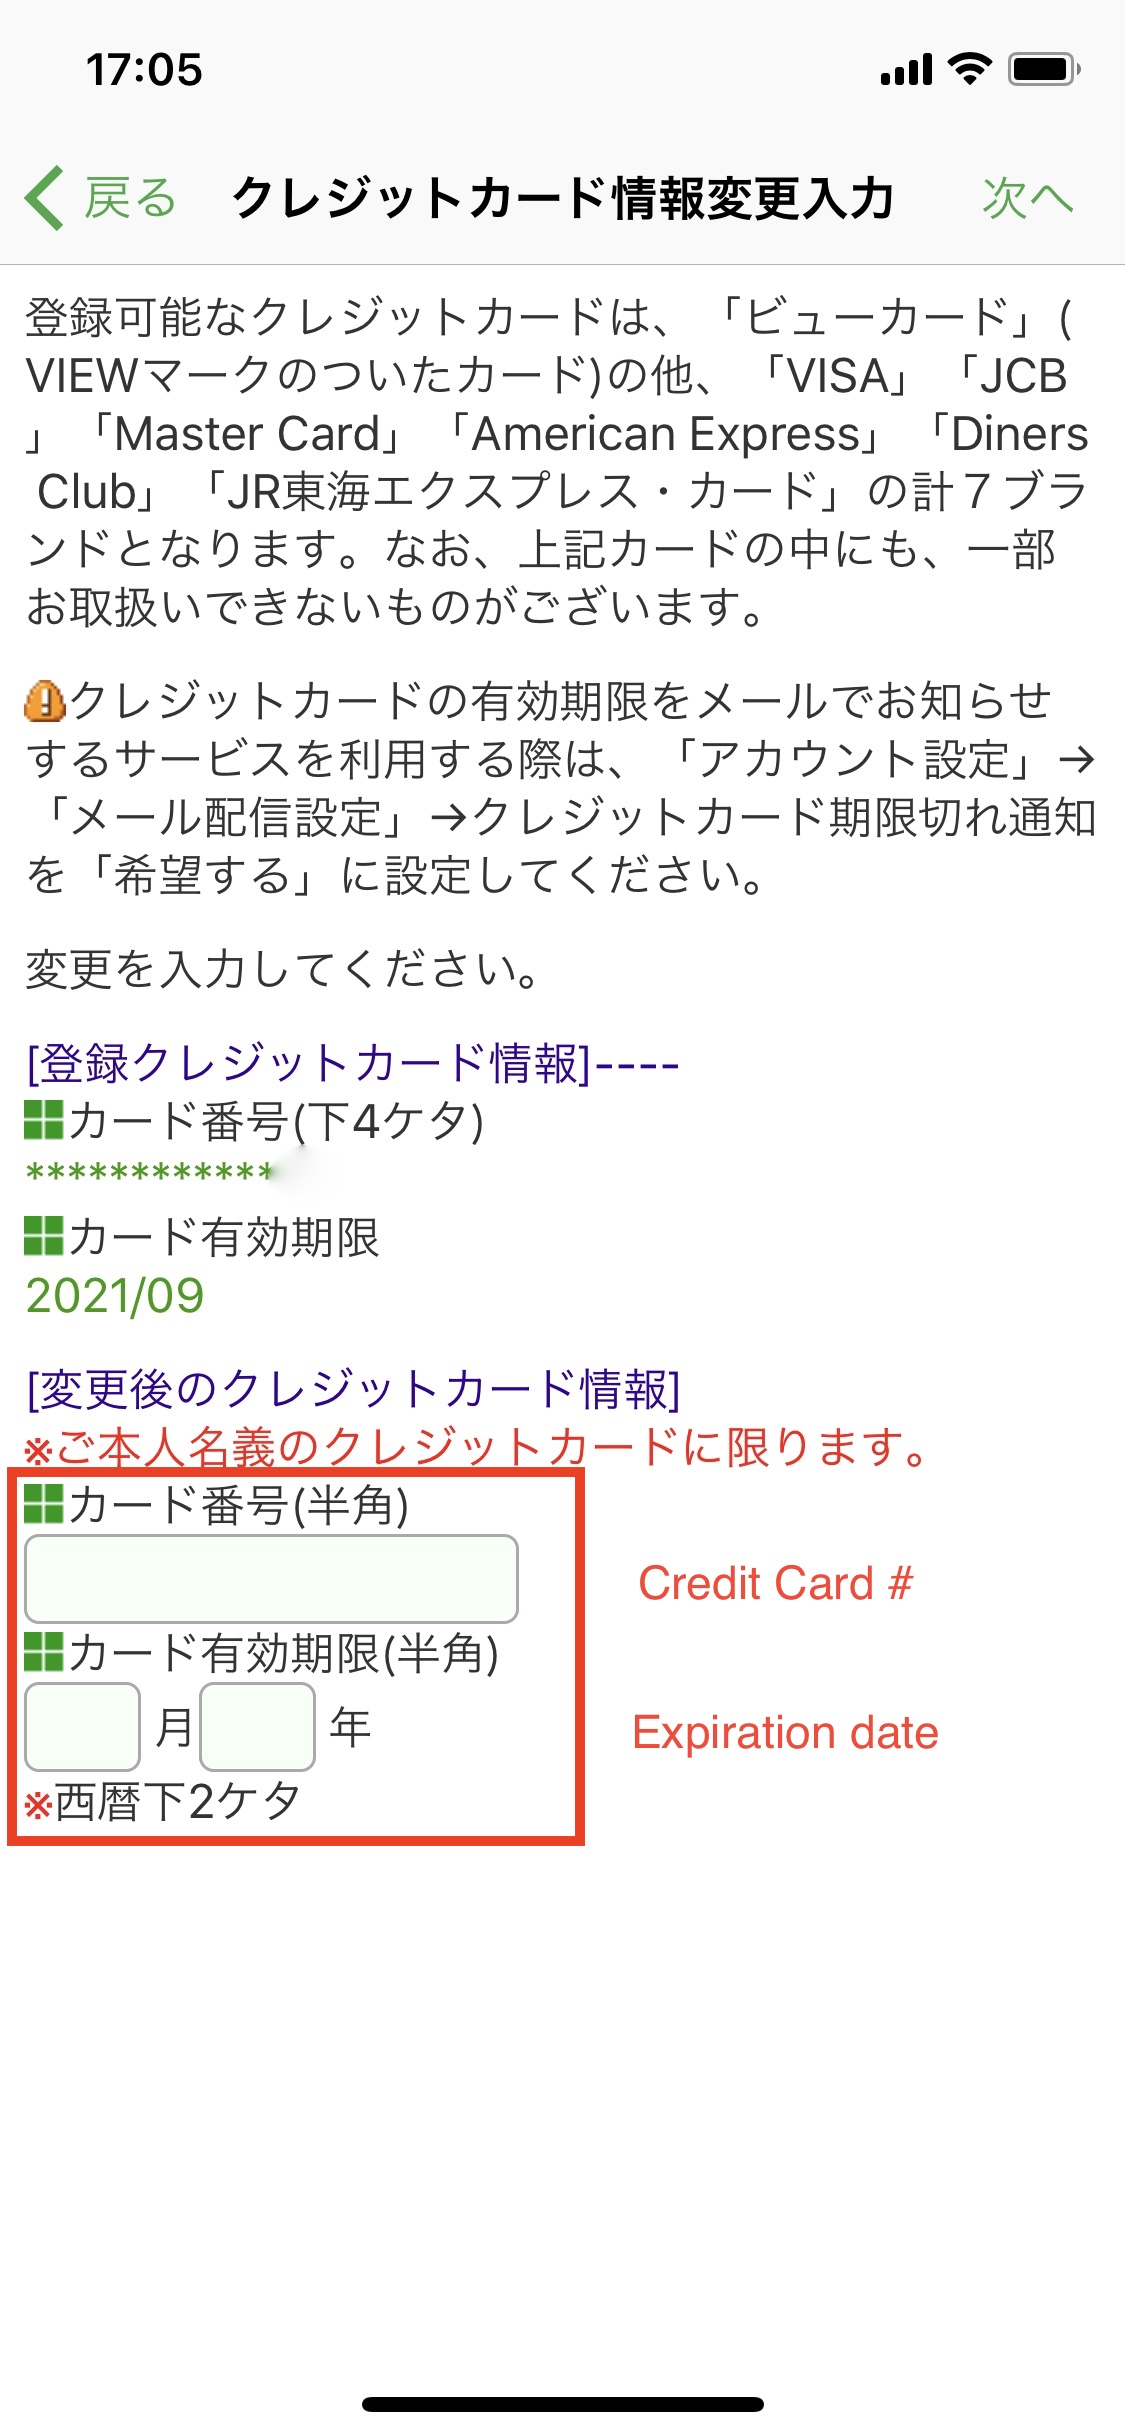 Register a credit card in the Suica App. This works separately from Apple Pay and offers maximum flexibility with JP issue Visa cards and JCB Line Pre-Paid cards which do not work on Apple Pay.